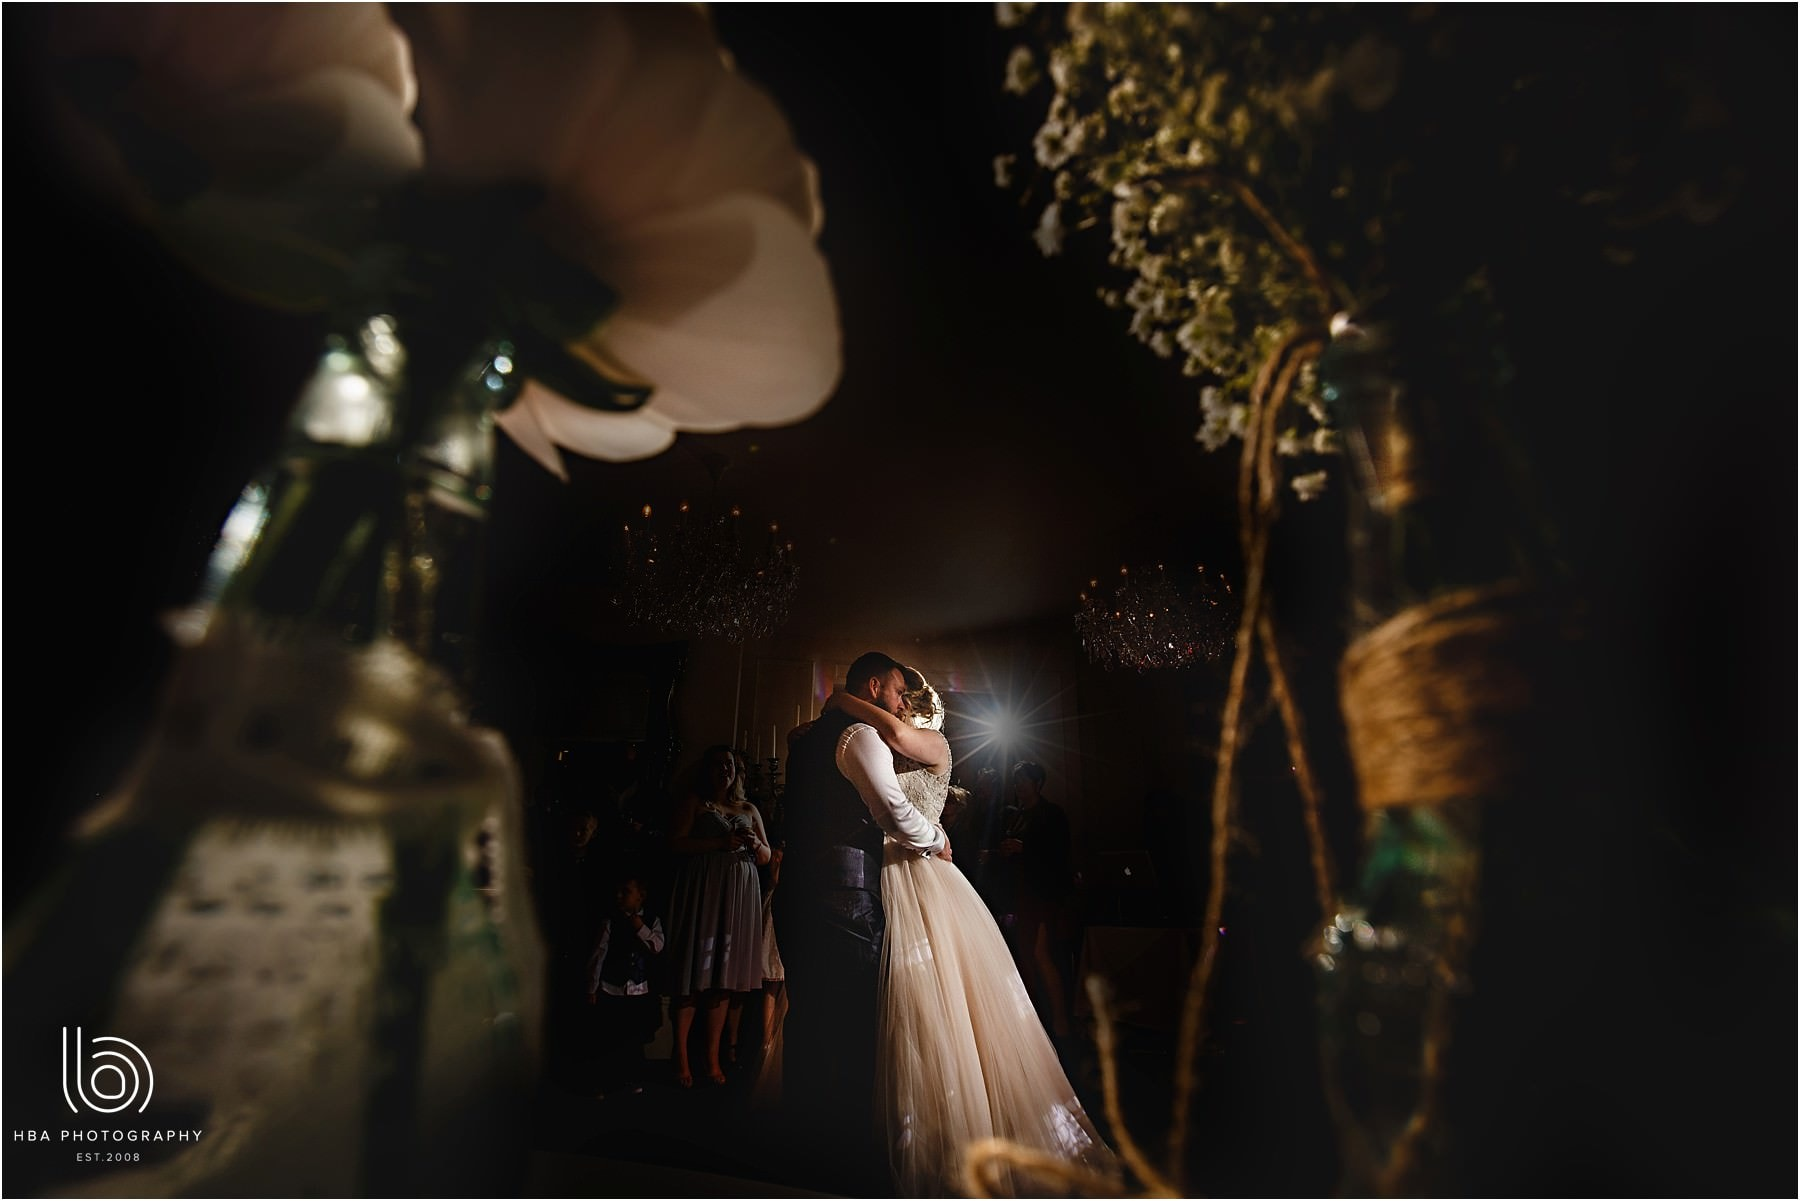 the bride and groom in the night